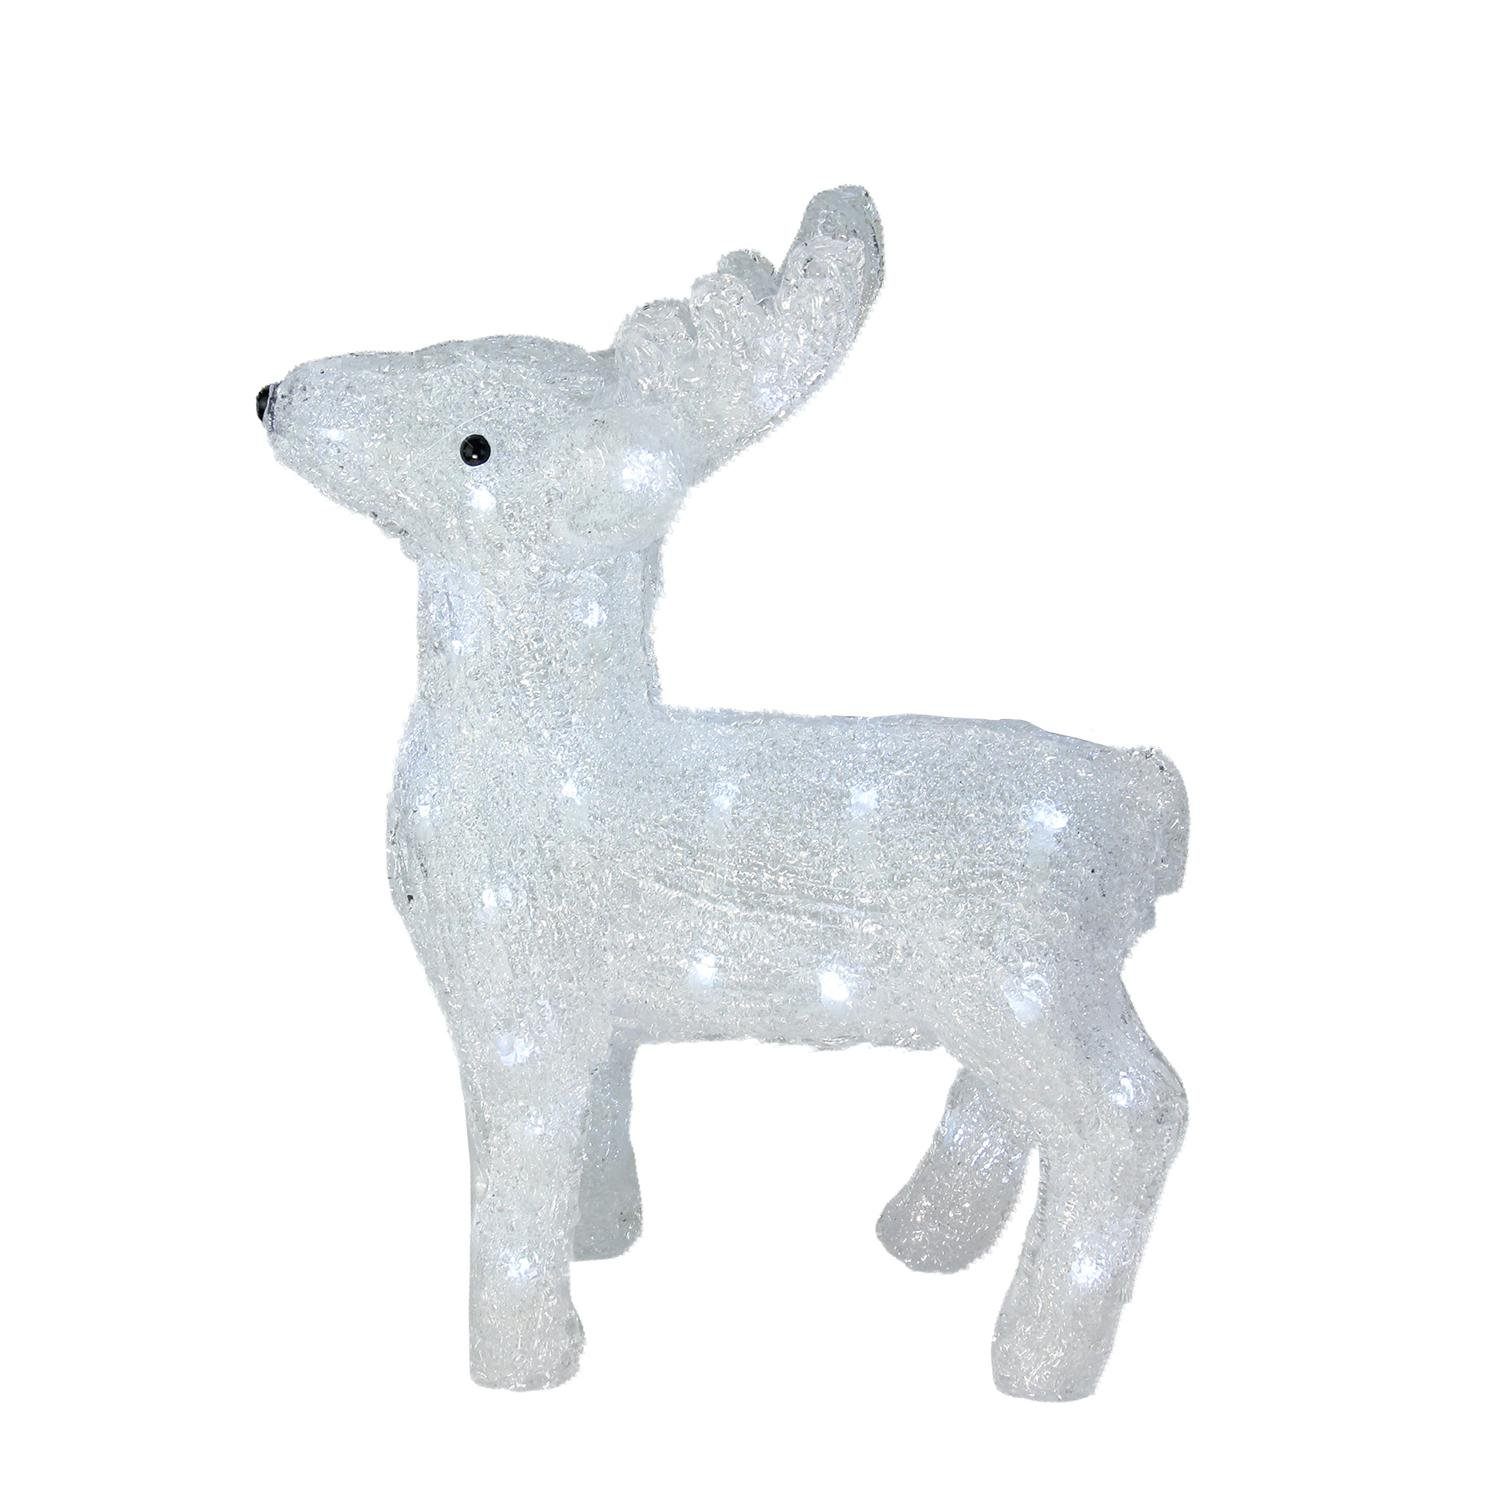 Northlight 15'' Lighted Commercial Grade Acrylic Baby Reindeer Christmas Display Decoration